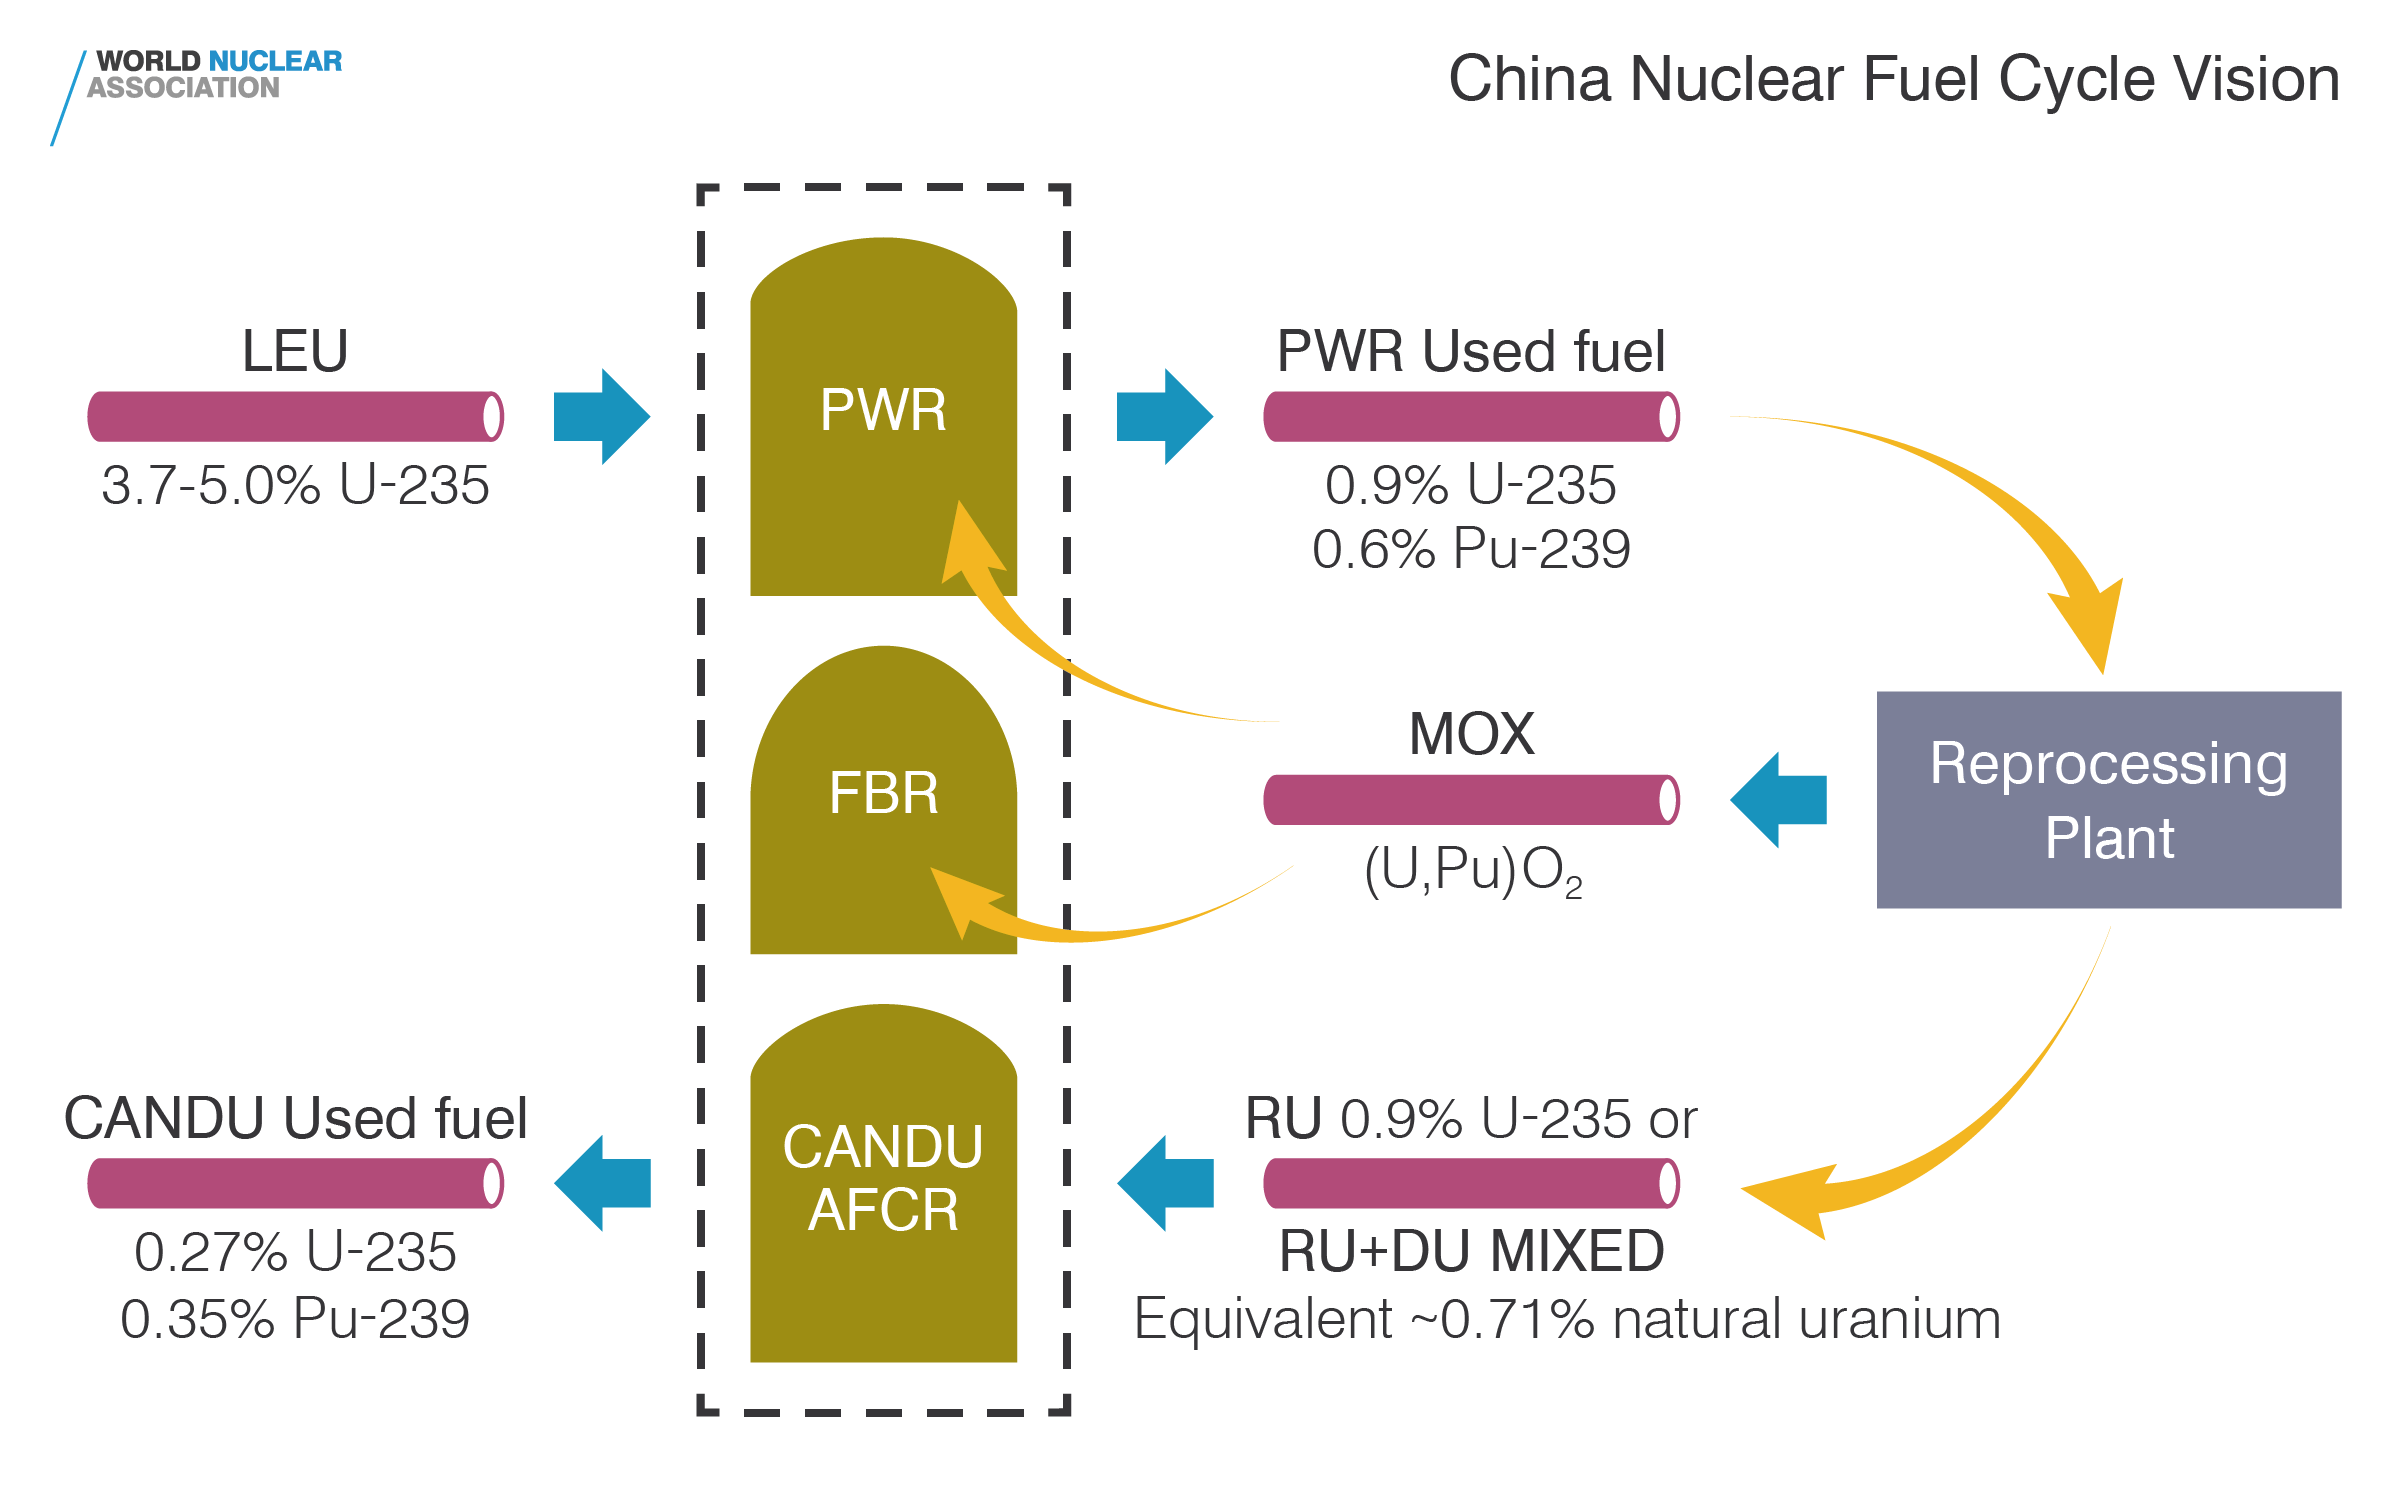 China nuclear fuel cycle vision